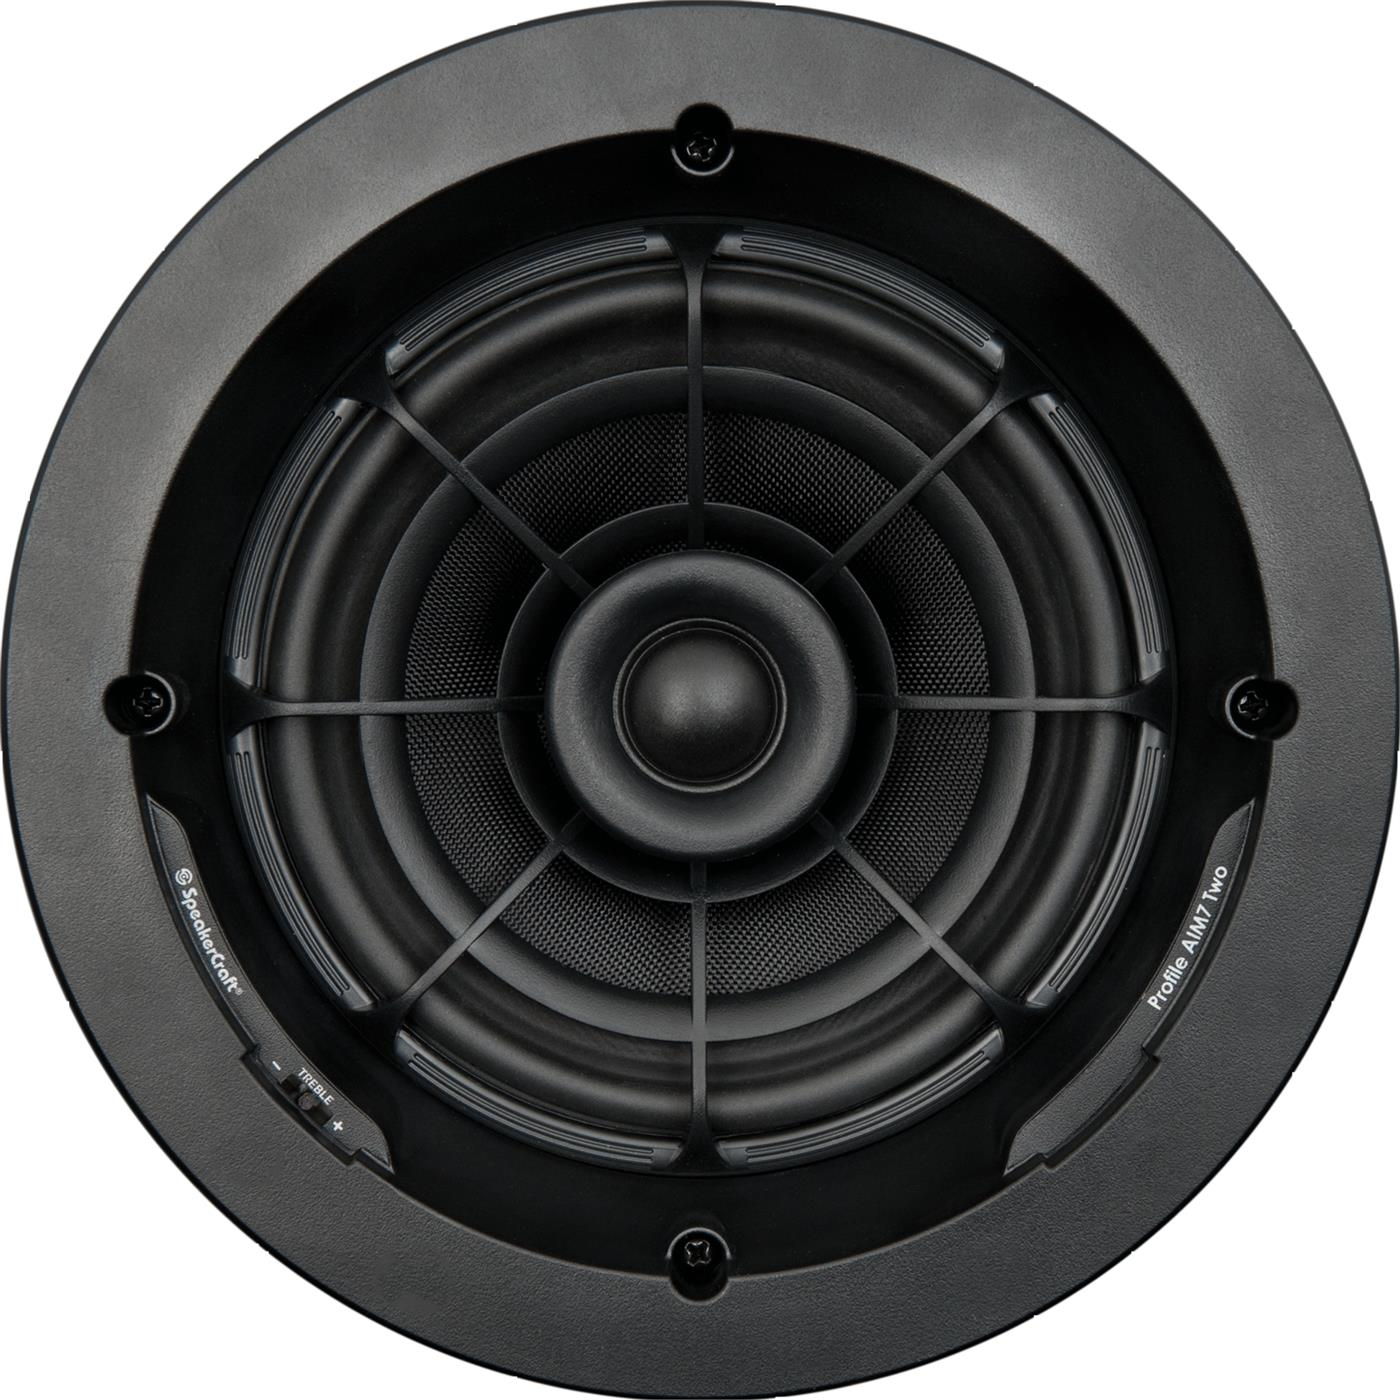 WEB_Image Speakercraft PROFILE AIM7 TWO stk  Rund 86885251